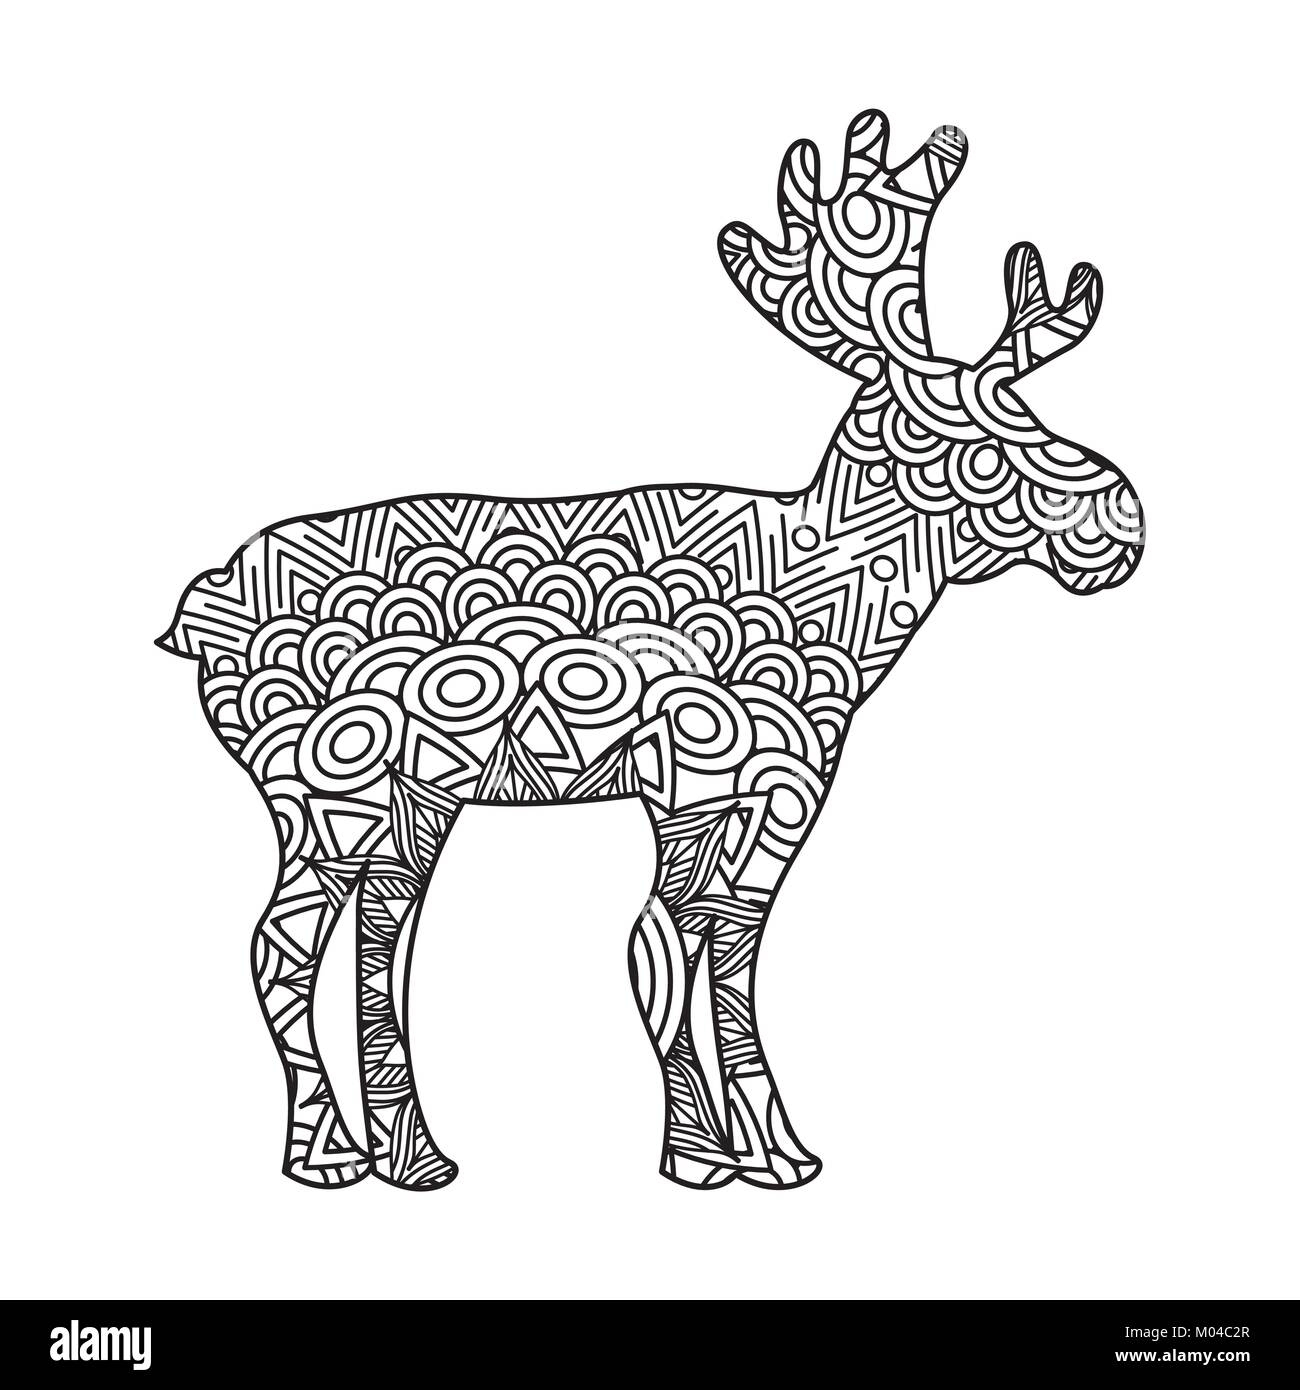 drawing zentangle for deer adult coloring page Stock Vector Art ...